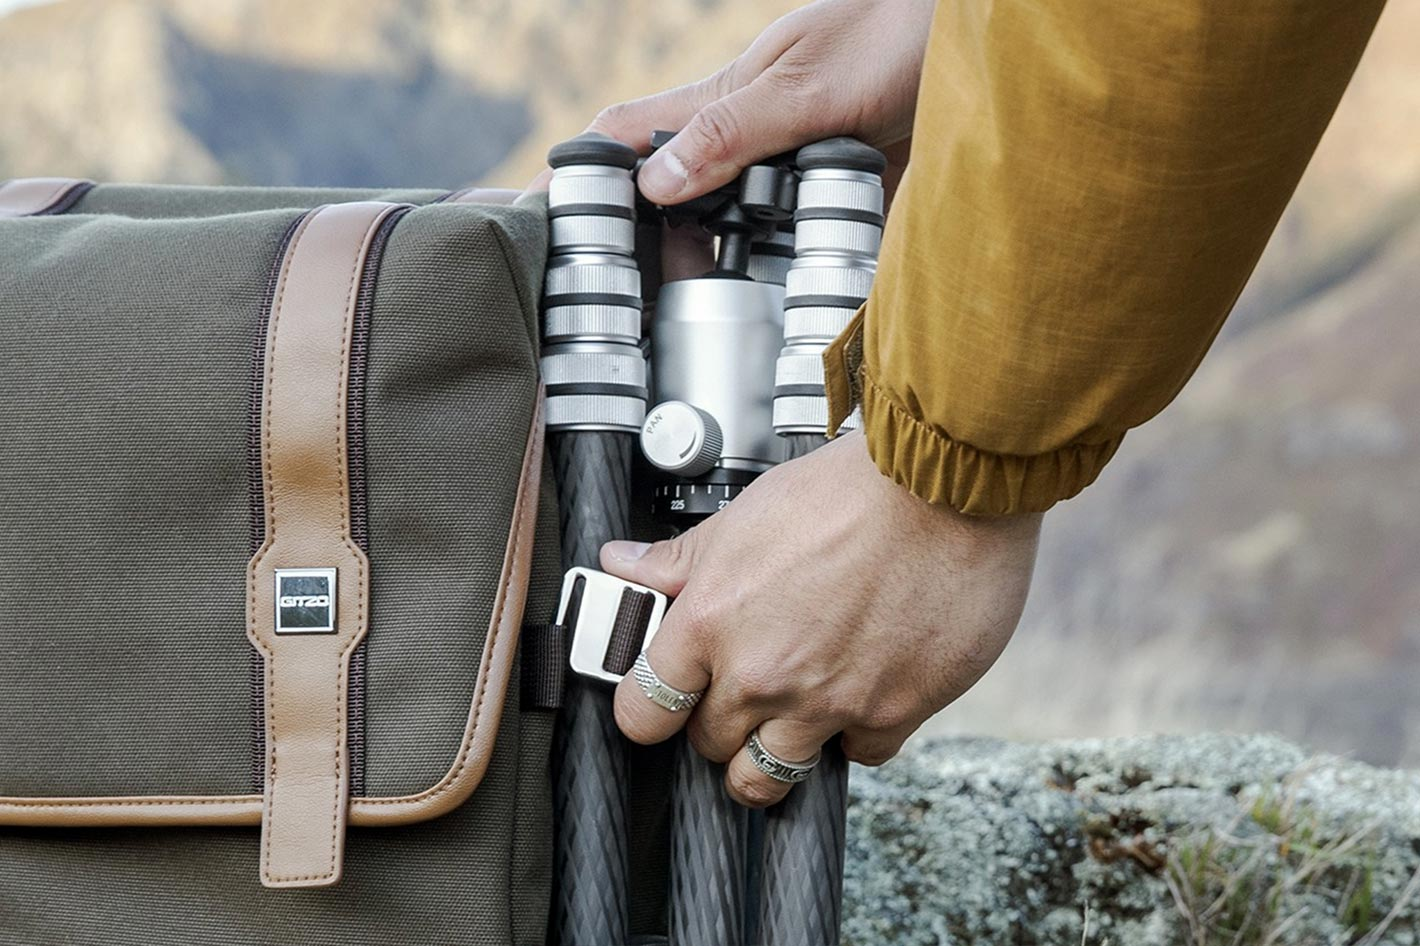 GITZO Légend: the repairable tripod and sustainable backpack